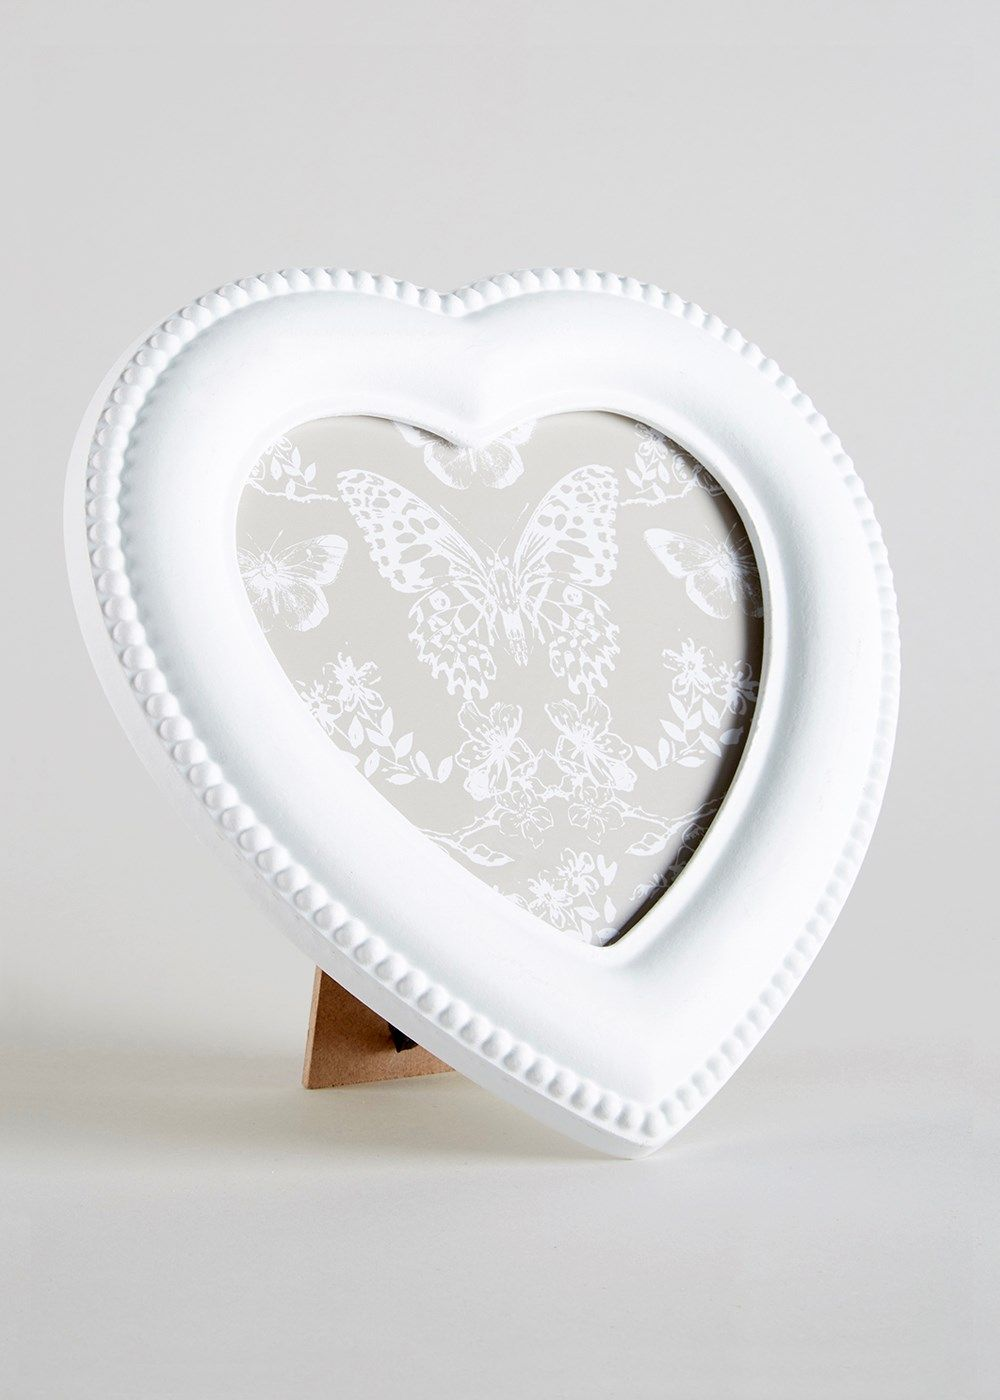 Heart Shaped Frame (19cm x 19cm) - Matalan | Props | Pinterest ...